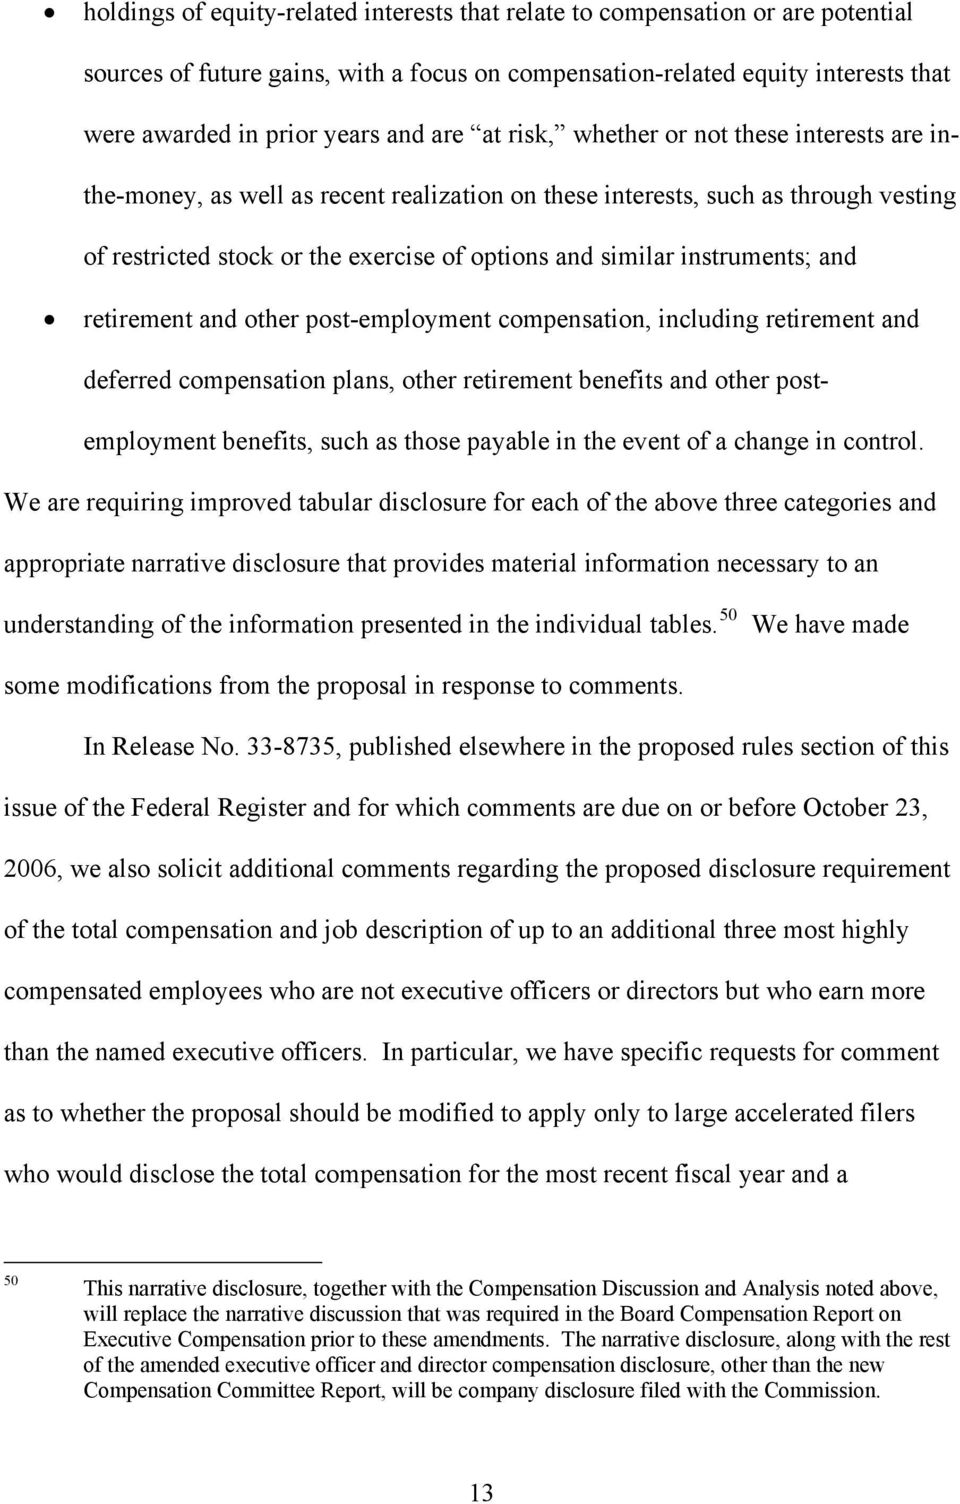 instruments; and retirement and other post-employment compensation, including retirement and deferred compensation plans, other retirement benefits and other postemployment benefits, such as those